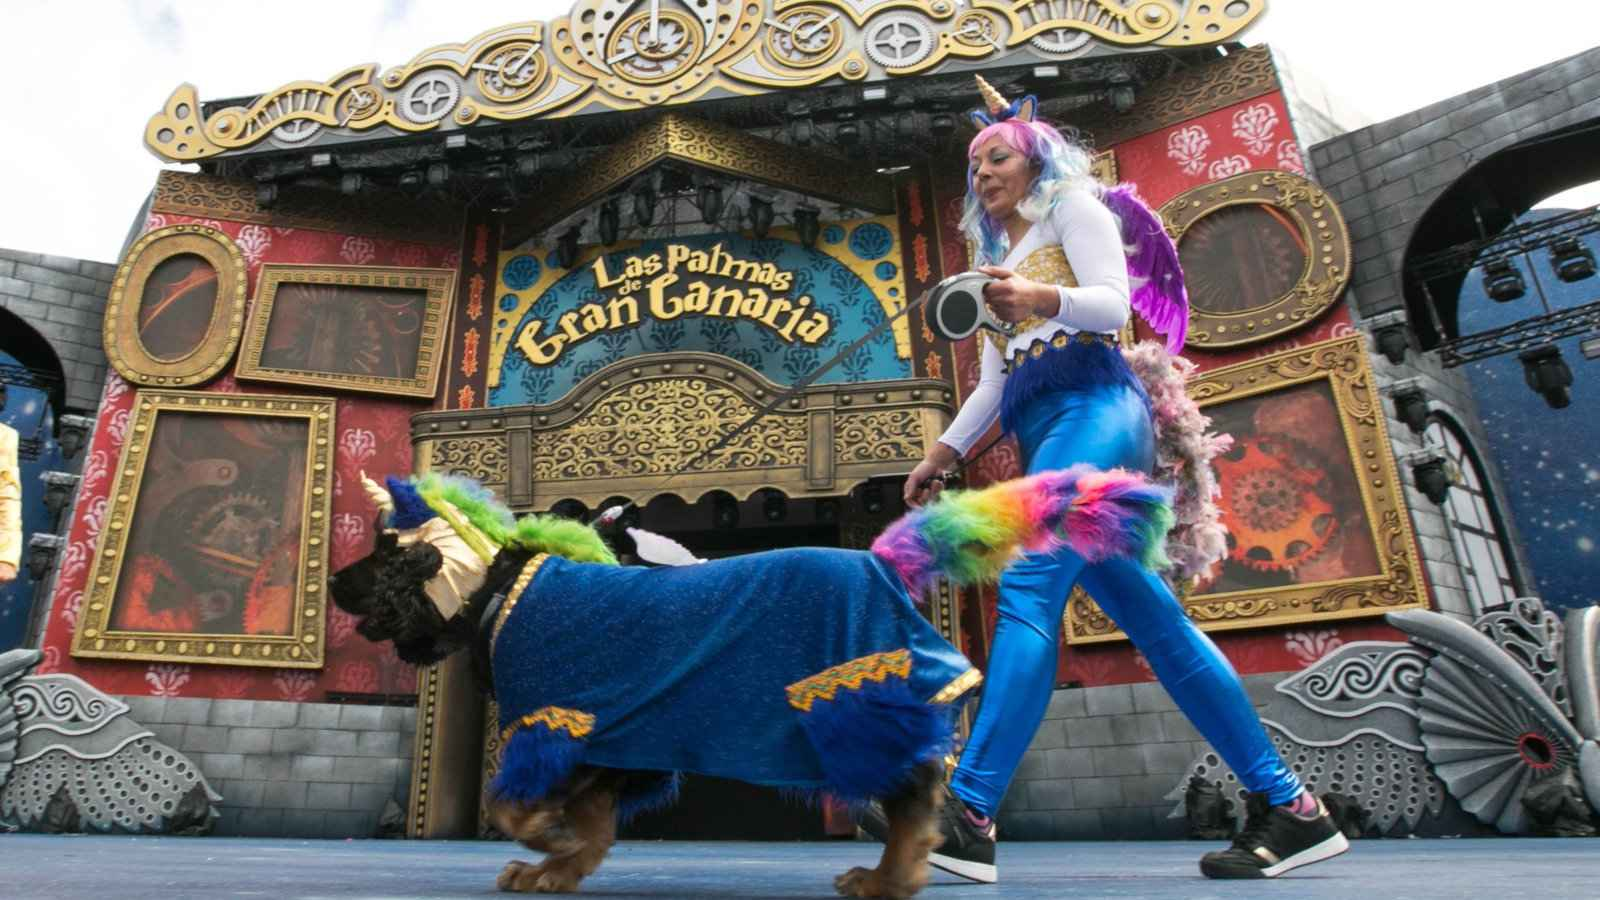 Carnival is an awesome celebration to experience in Gran Canaria, especially if you attend the special canine carnival costume contest!